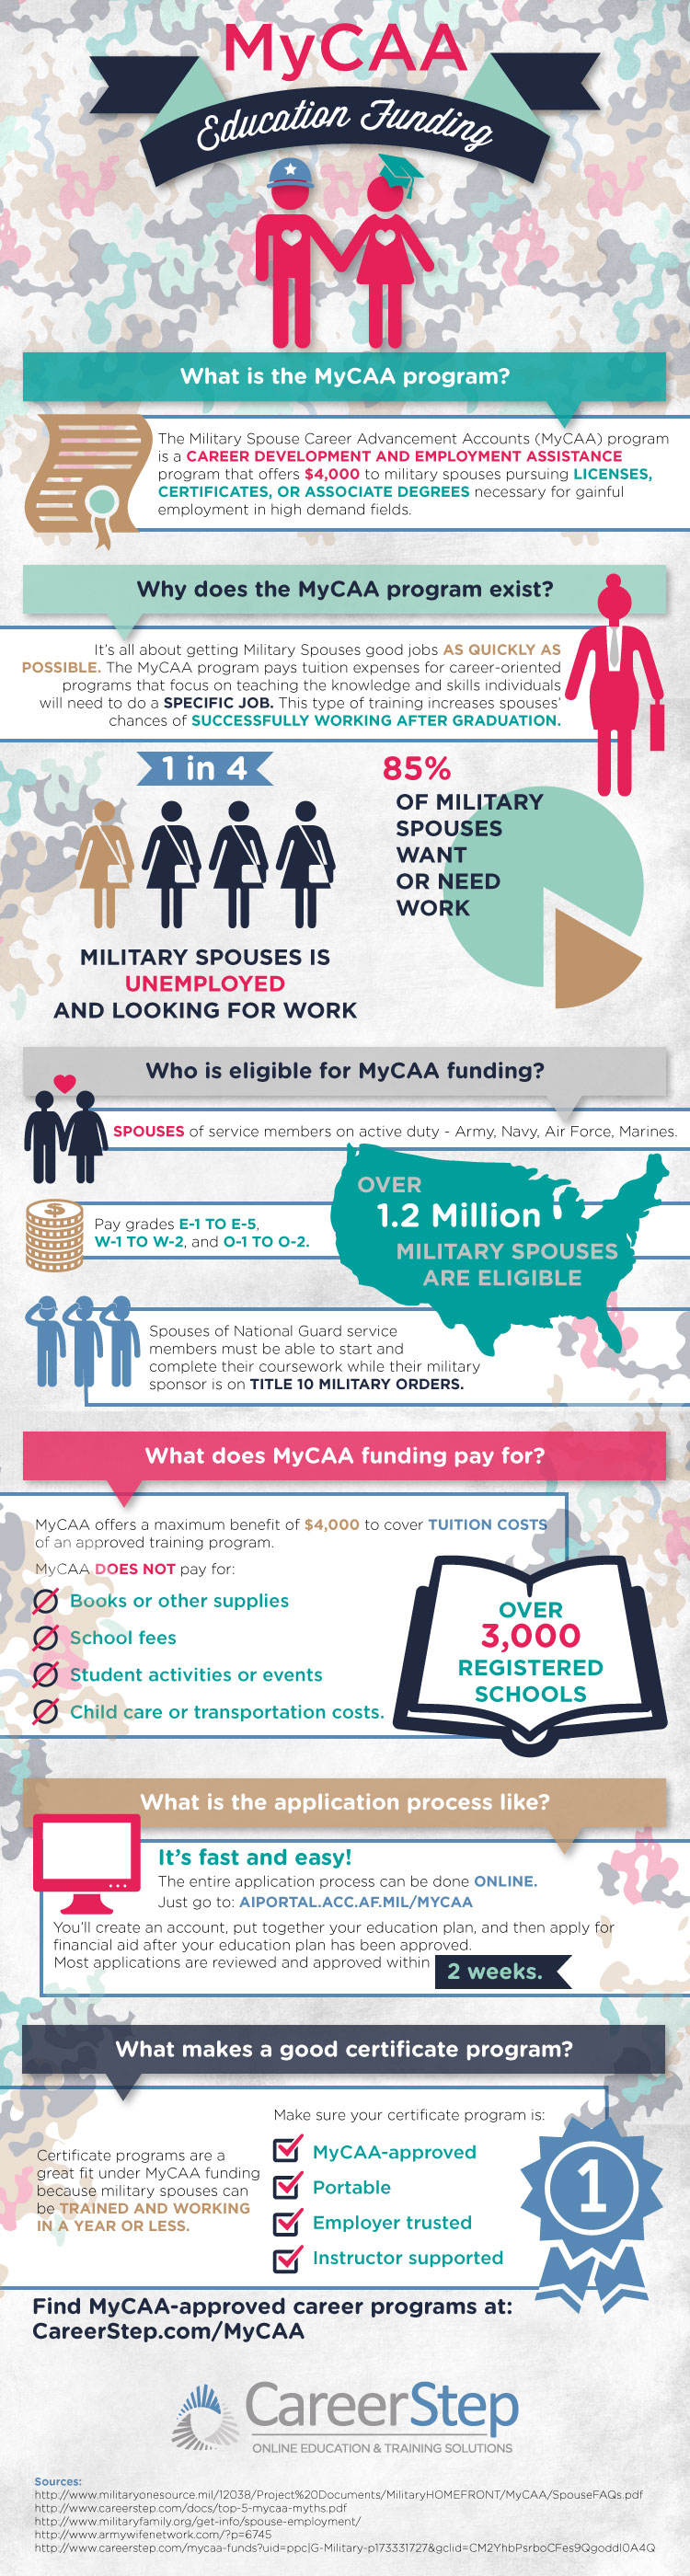 mycaa-education-funding-infographic